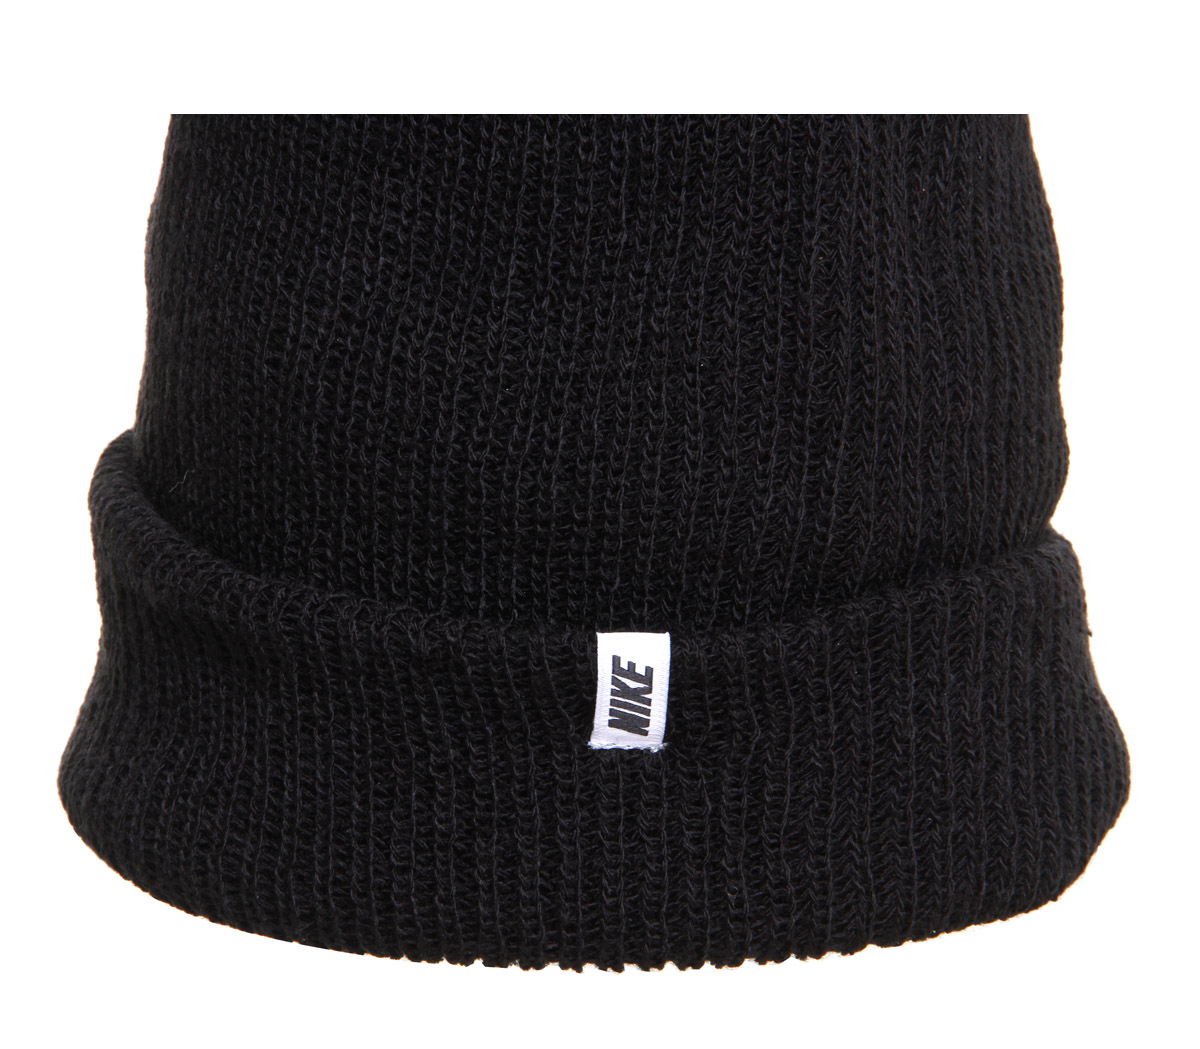 f1965a4d6 Nike Beanie Core in Black for Men - Lyst